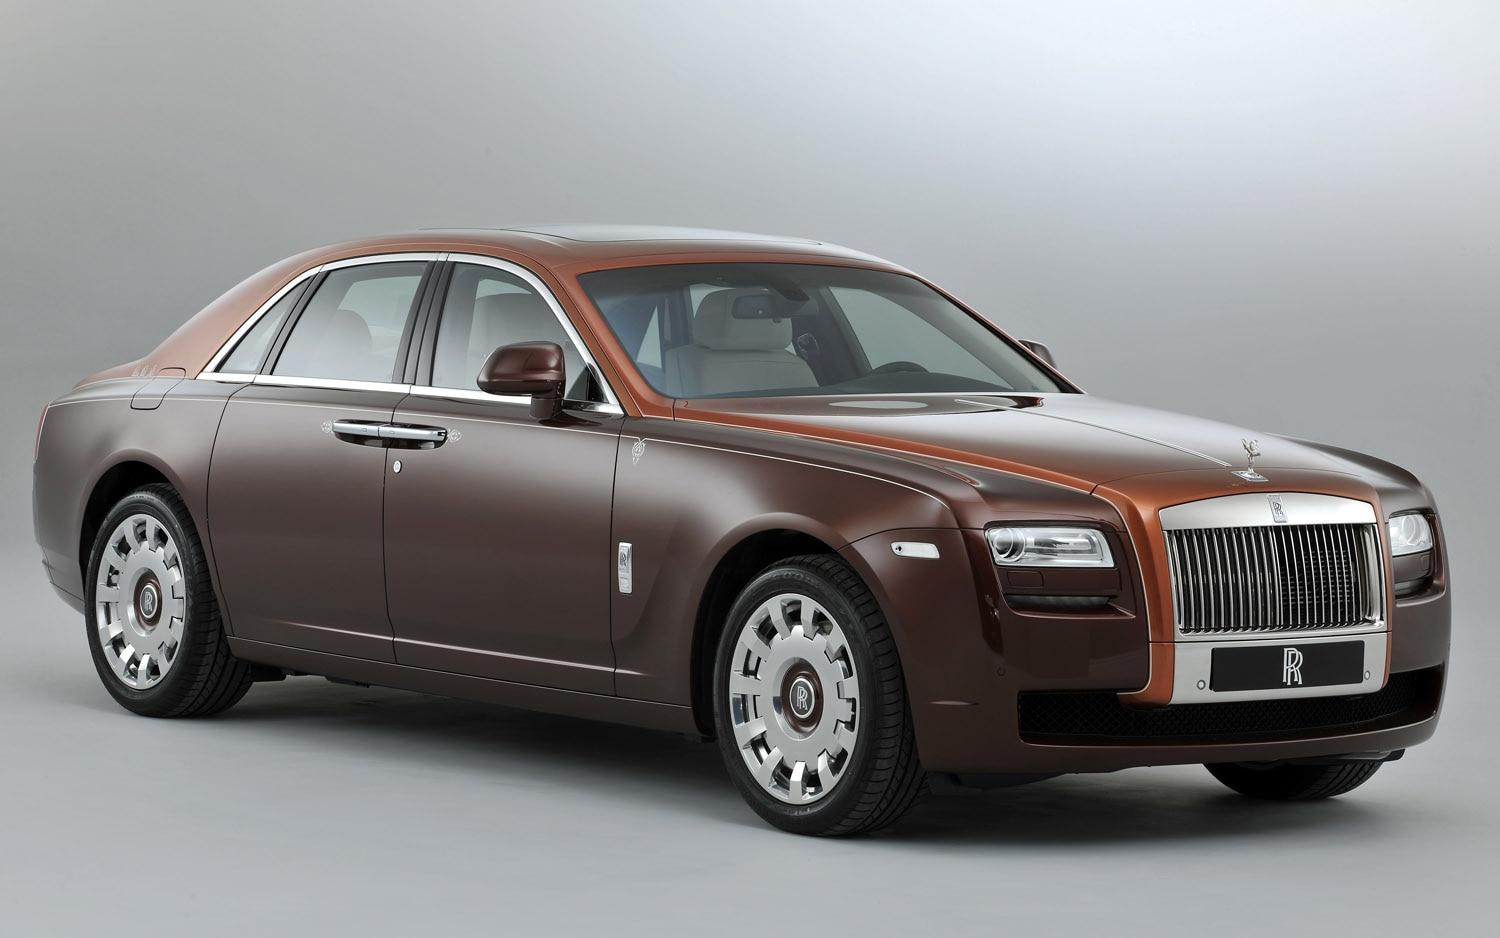 2013 Rolls Royce Ghost 1001 Nights Front Three Quarter1